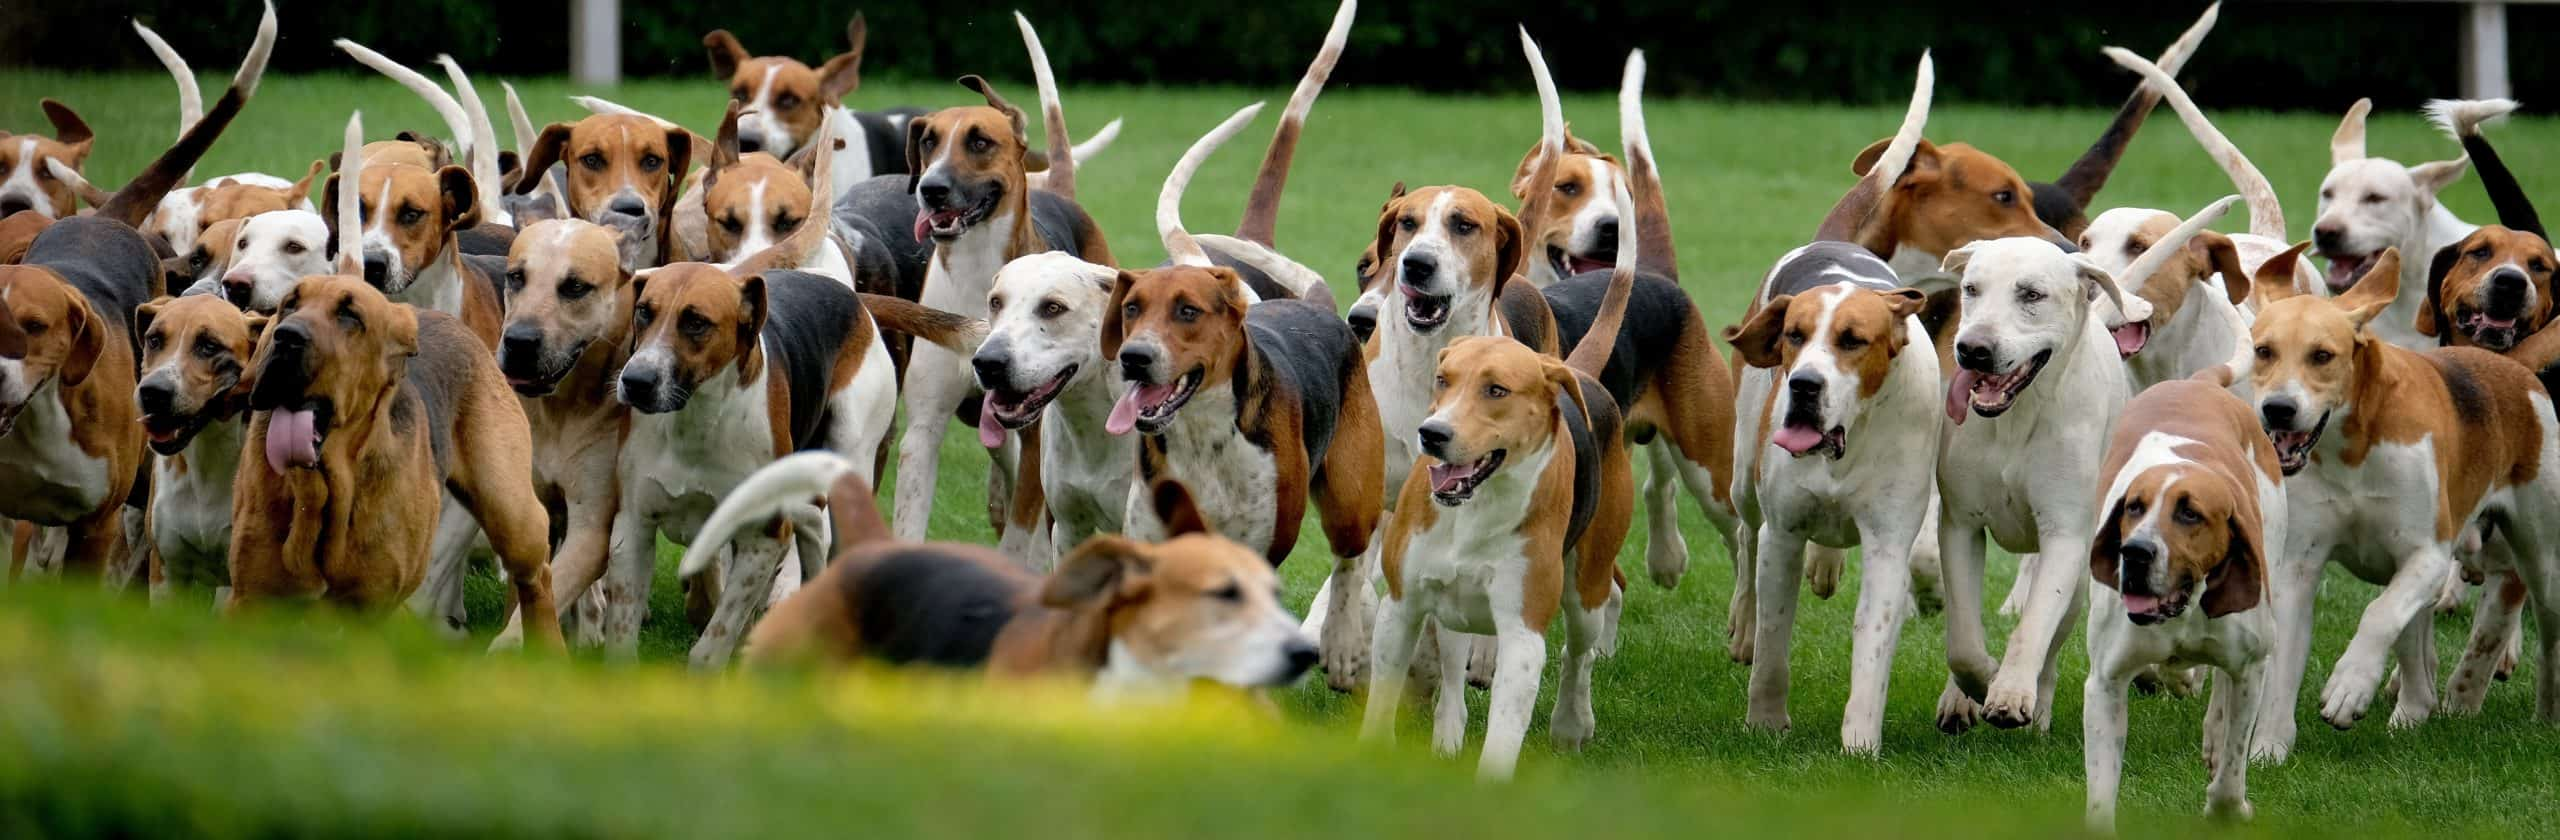 Group of American Foxhounds ready for the chase. Hound dogs like American foxhounds have a strong drive to follow a scent, which can distract the dogs and make it hard to train them.